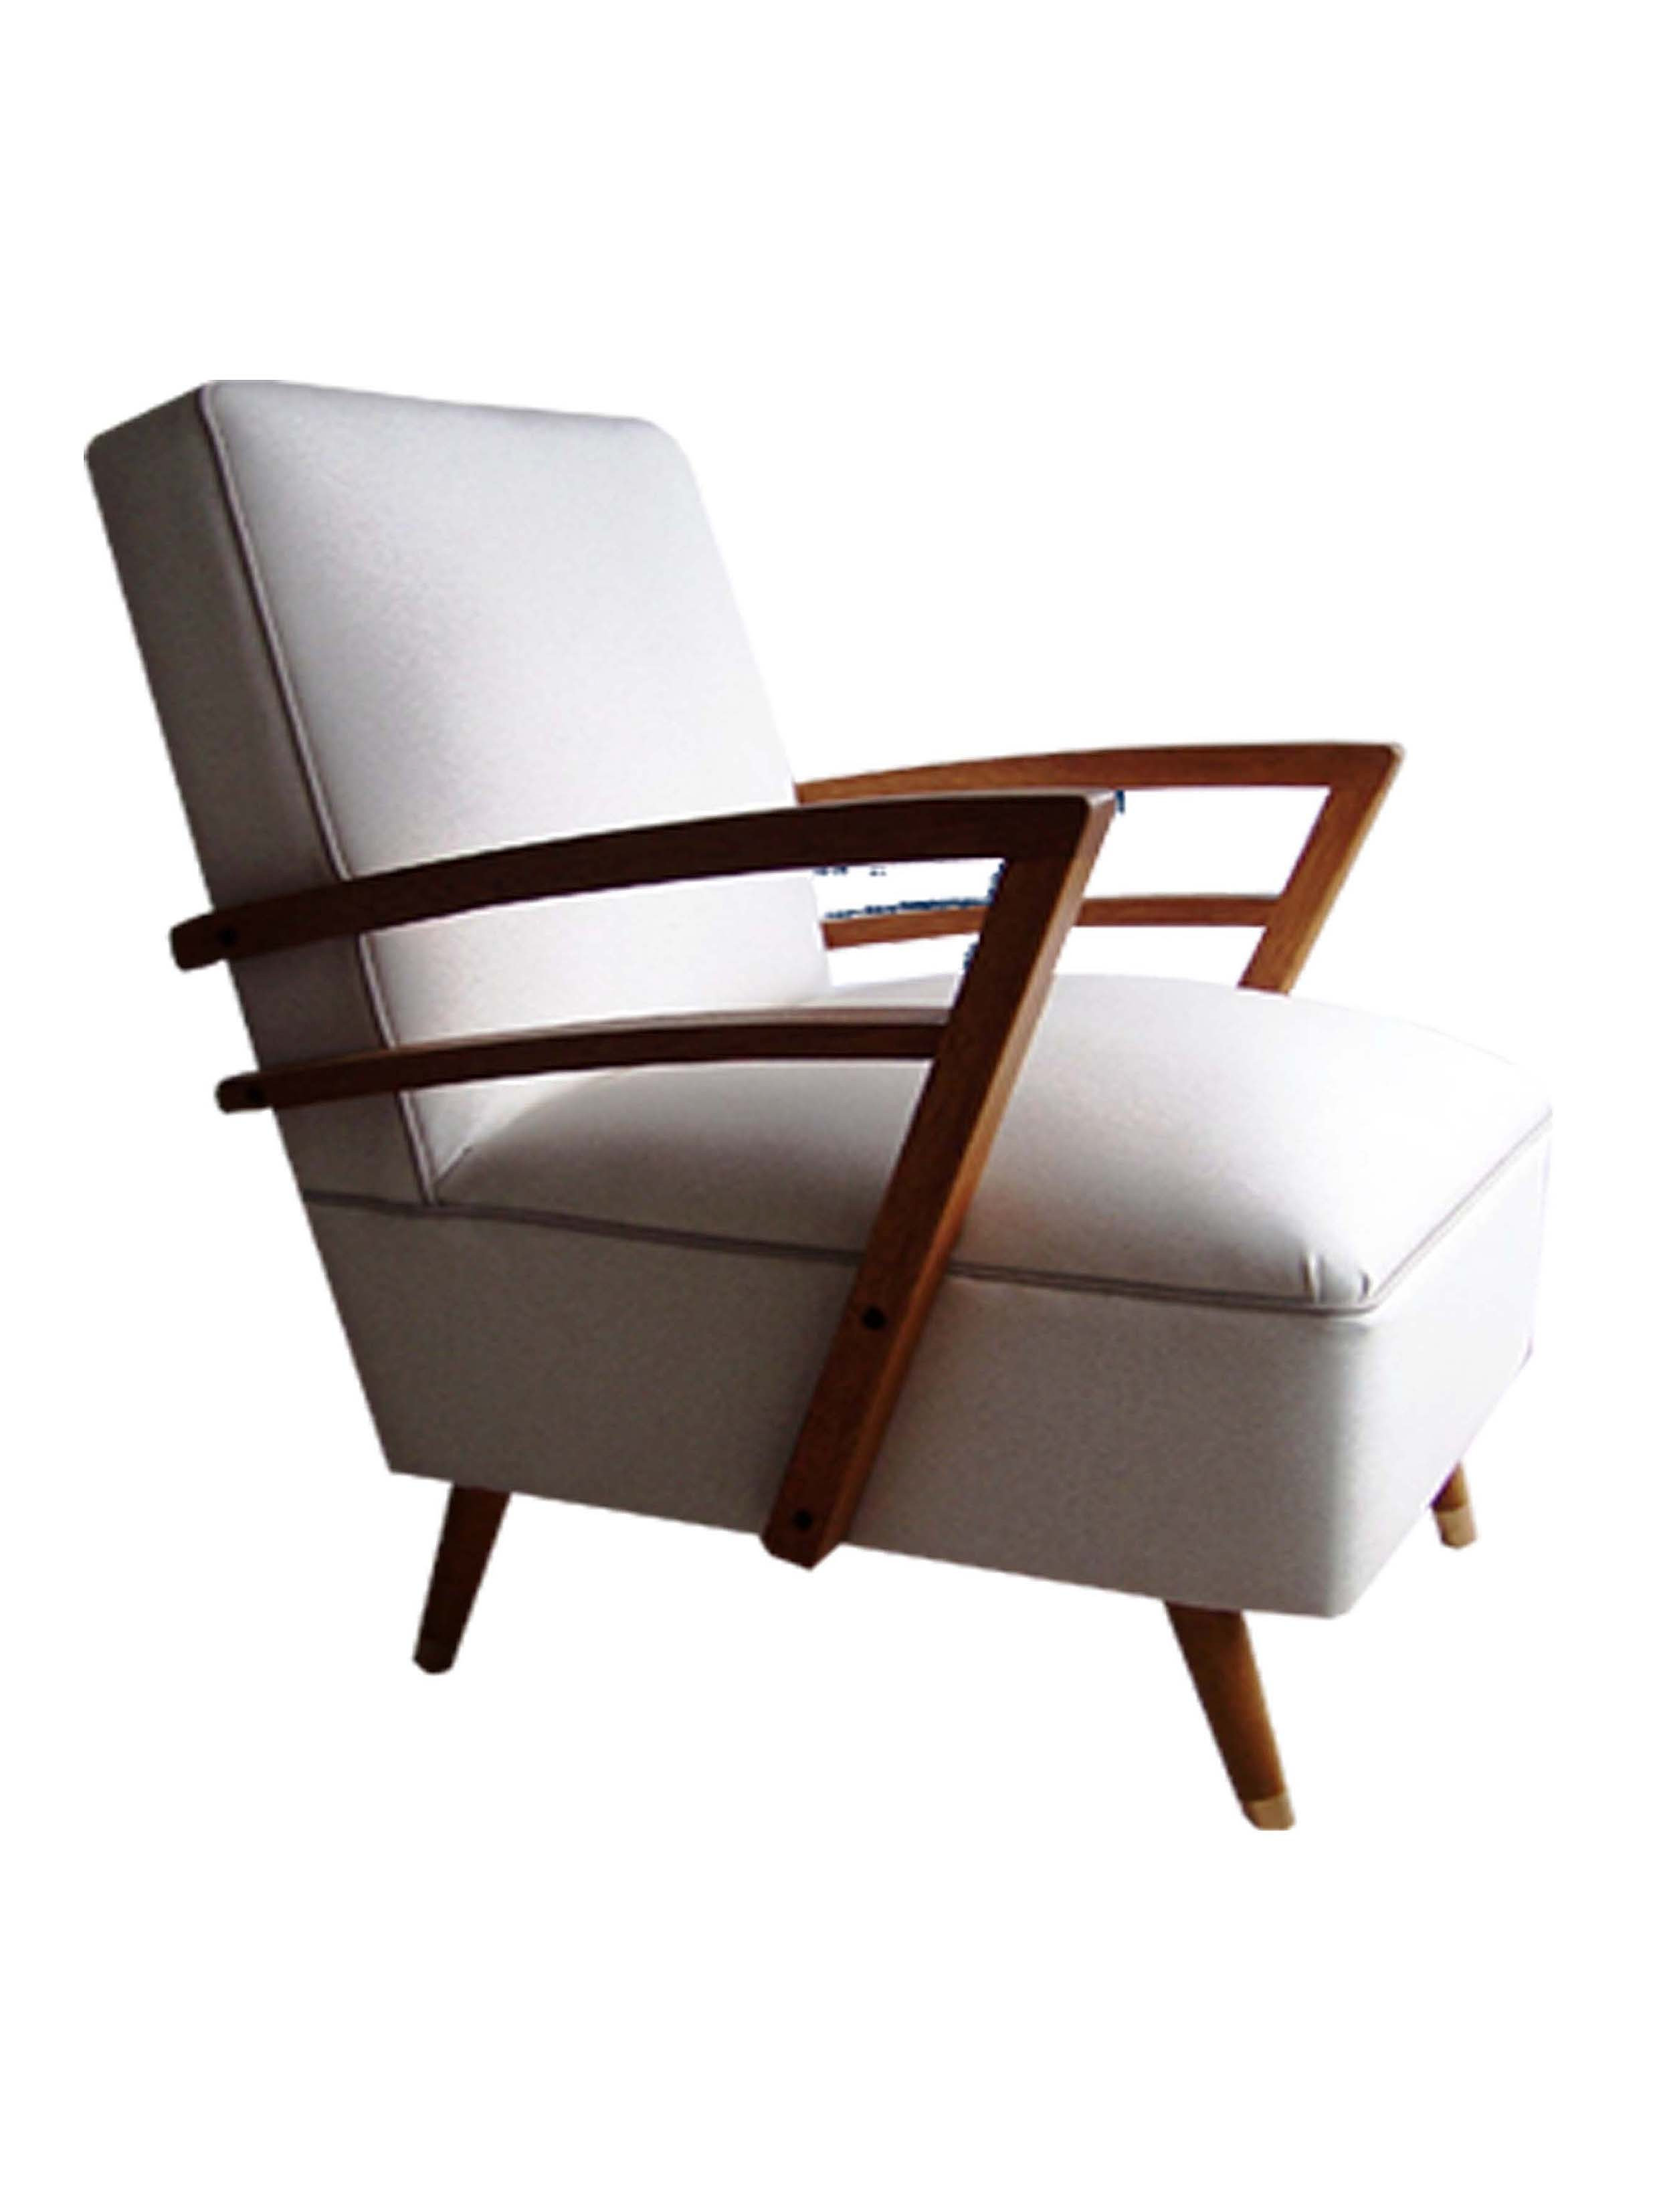 Retro Furniture Upholsterers Gold Coast Upholstery